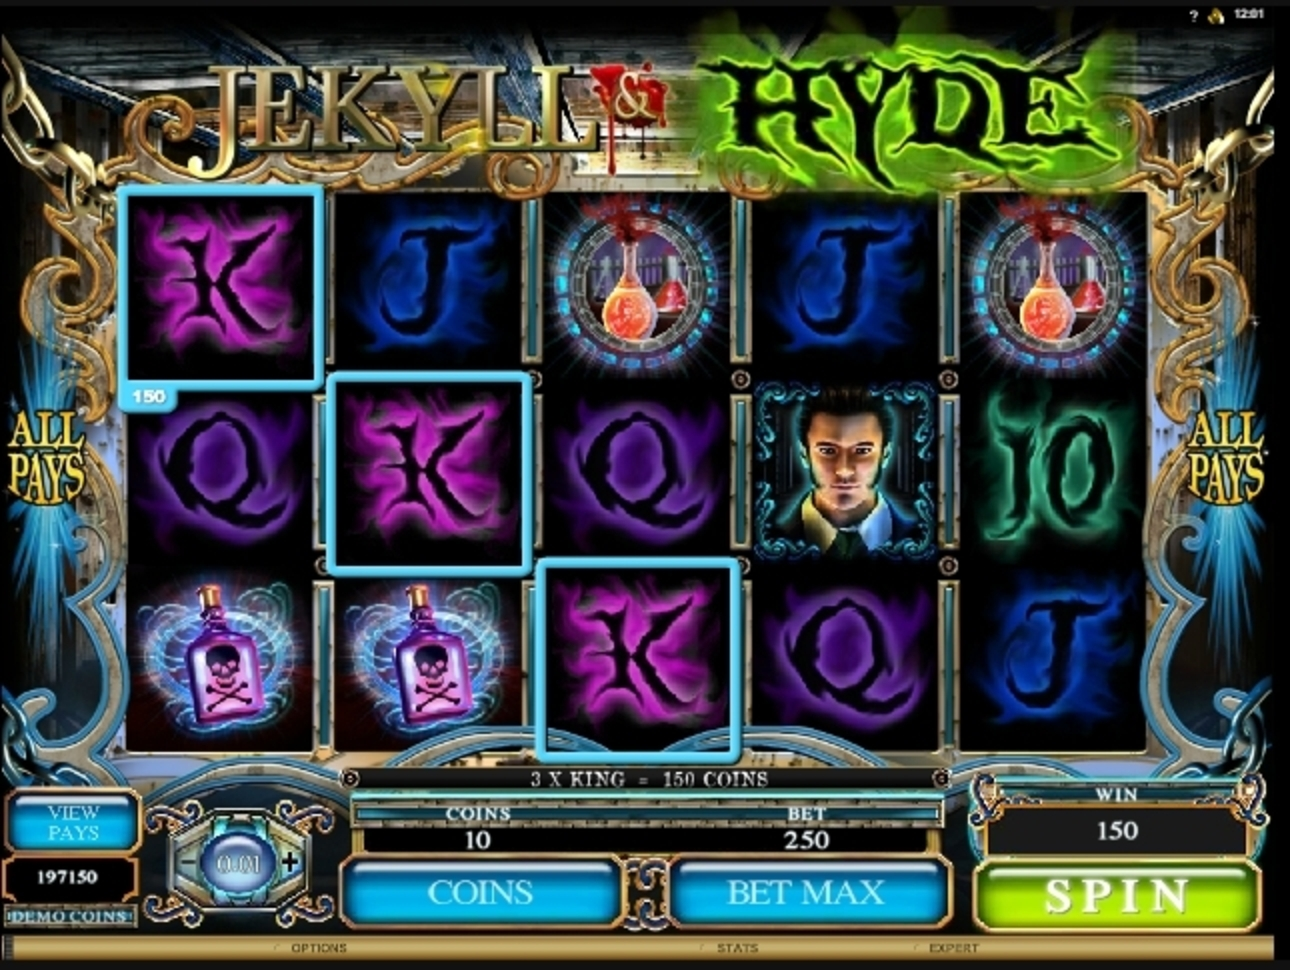 Win Money in Jekyll And Hyde (Microgaming) Free Slot Game by Microgaming